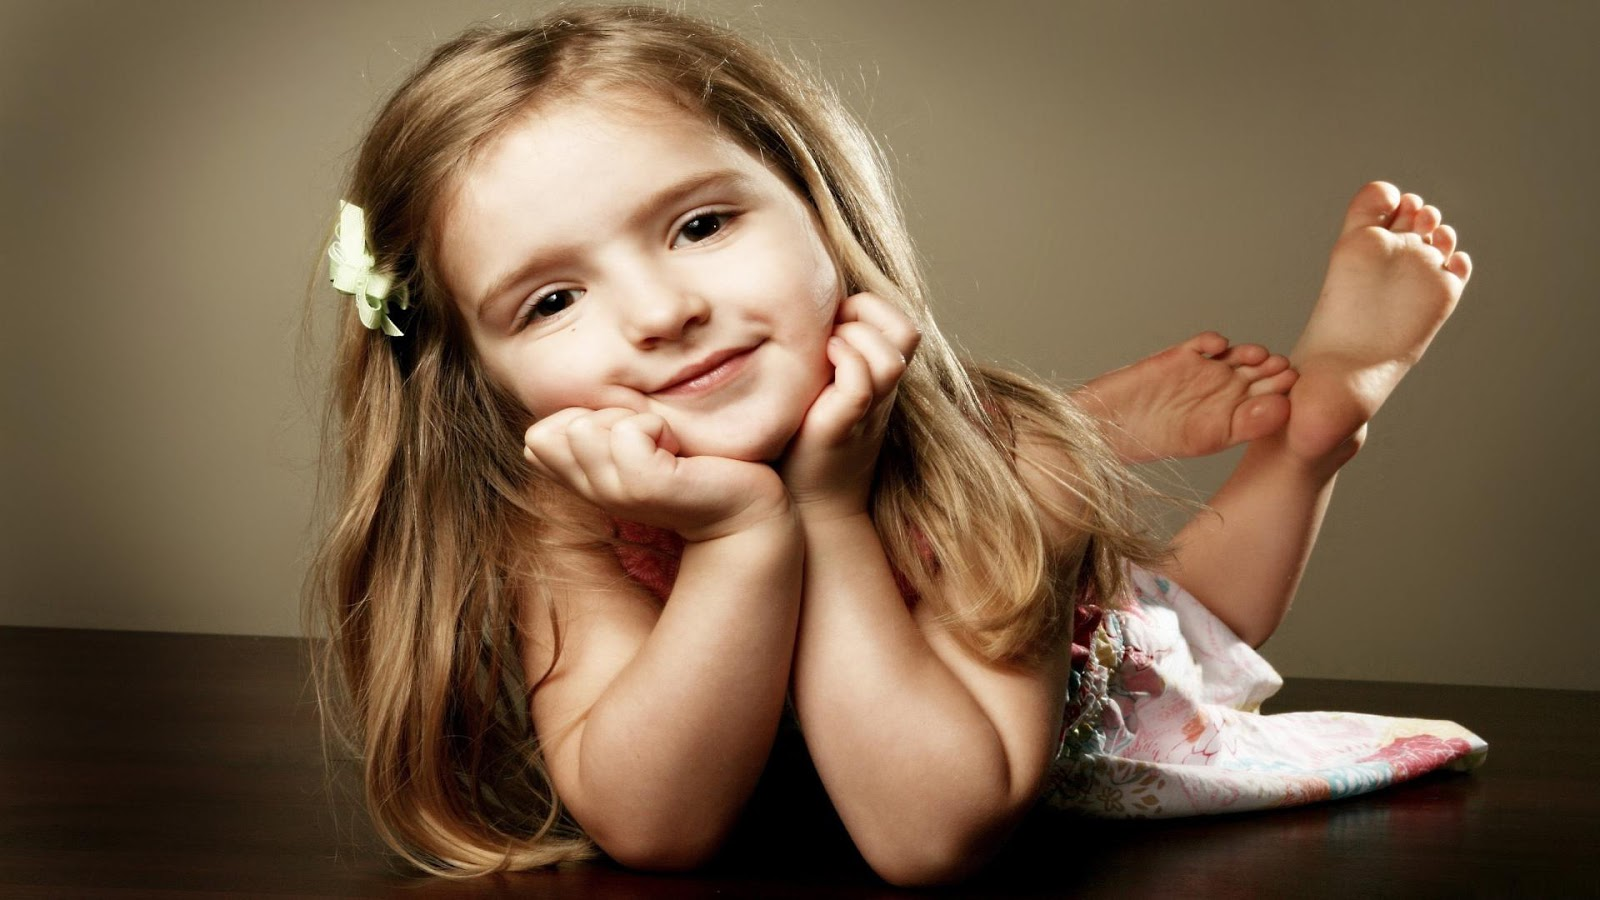 Cute baby girls 10 wallpapers download hd wallpapers - Sweet baby girl wallpaper pictures ...